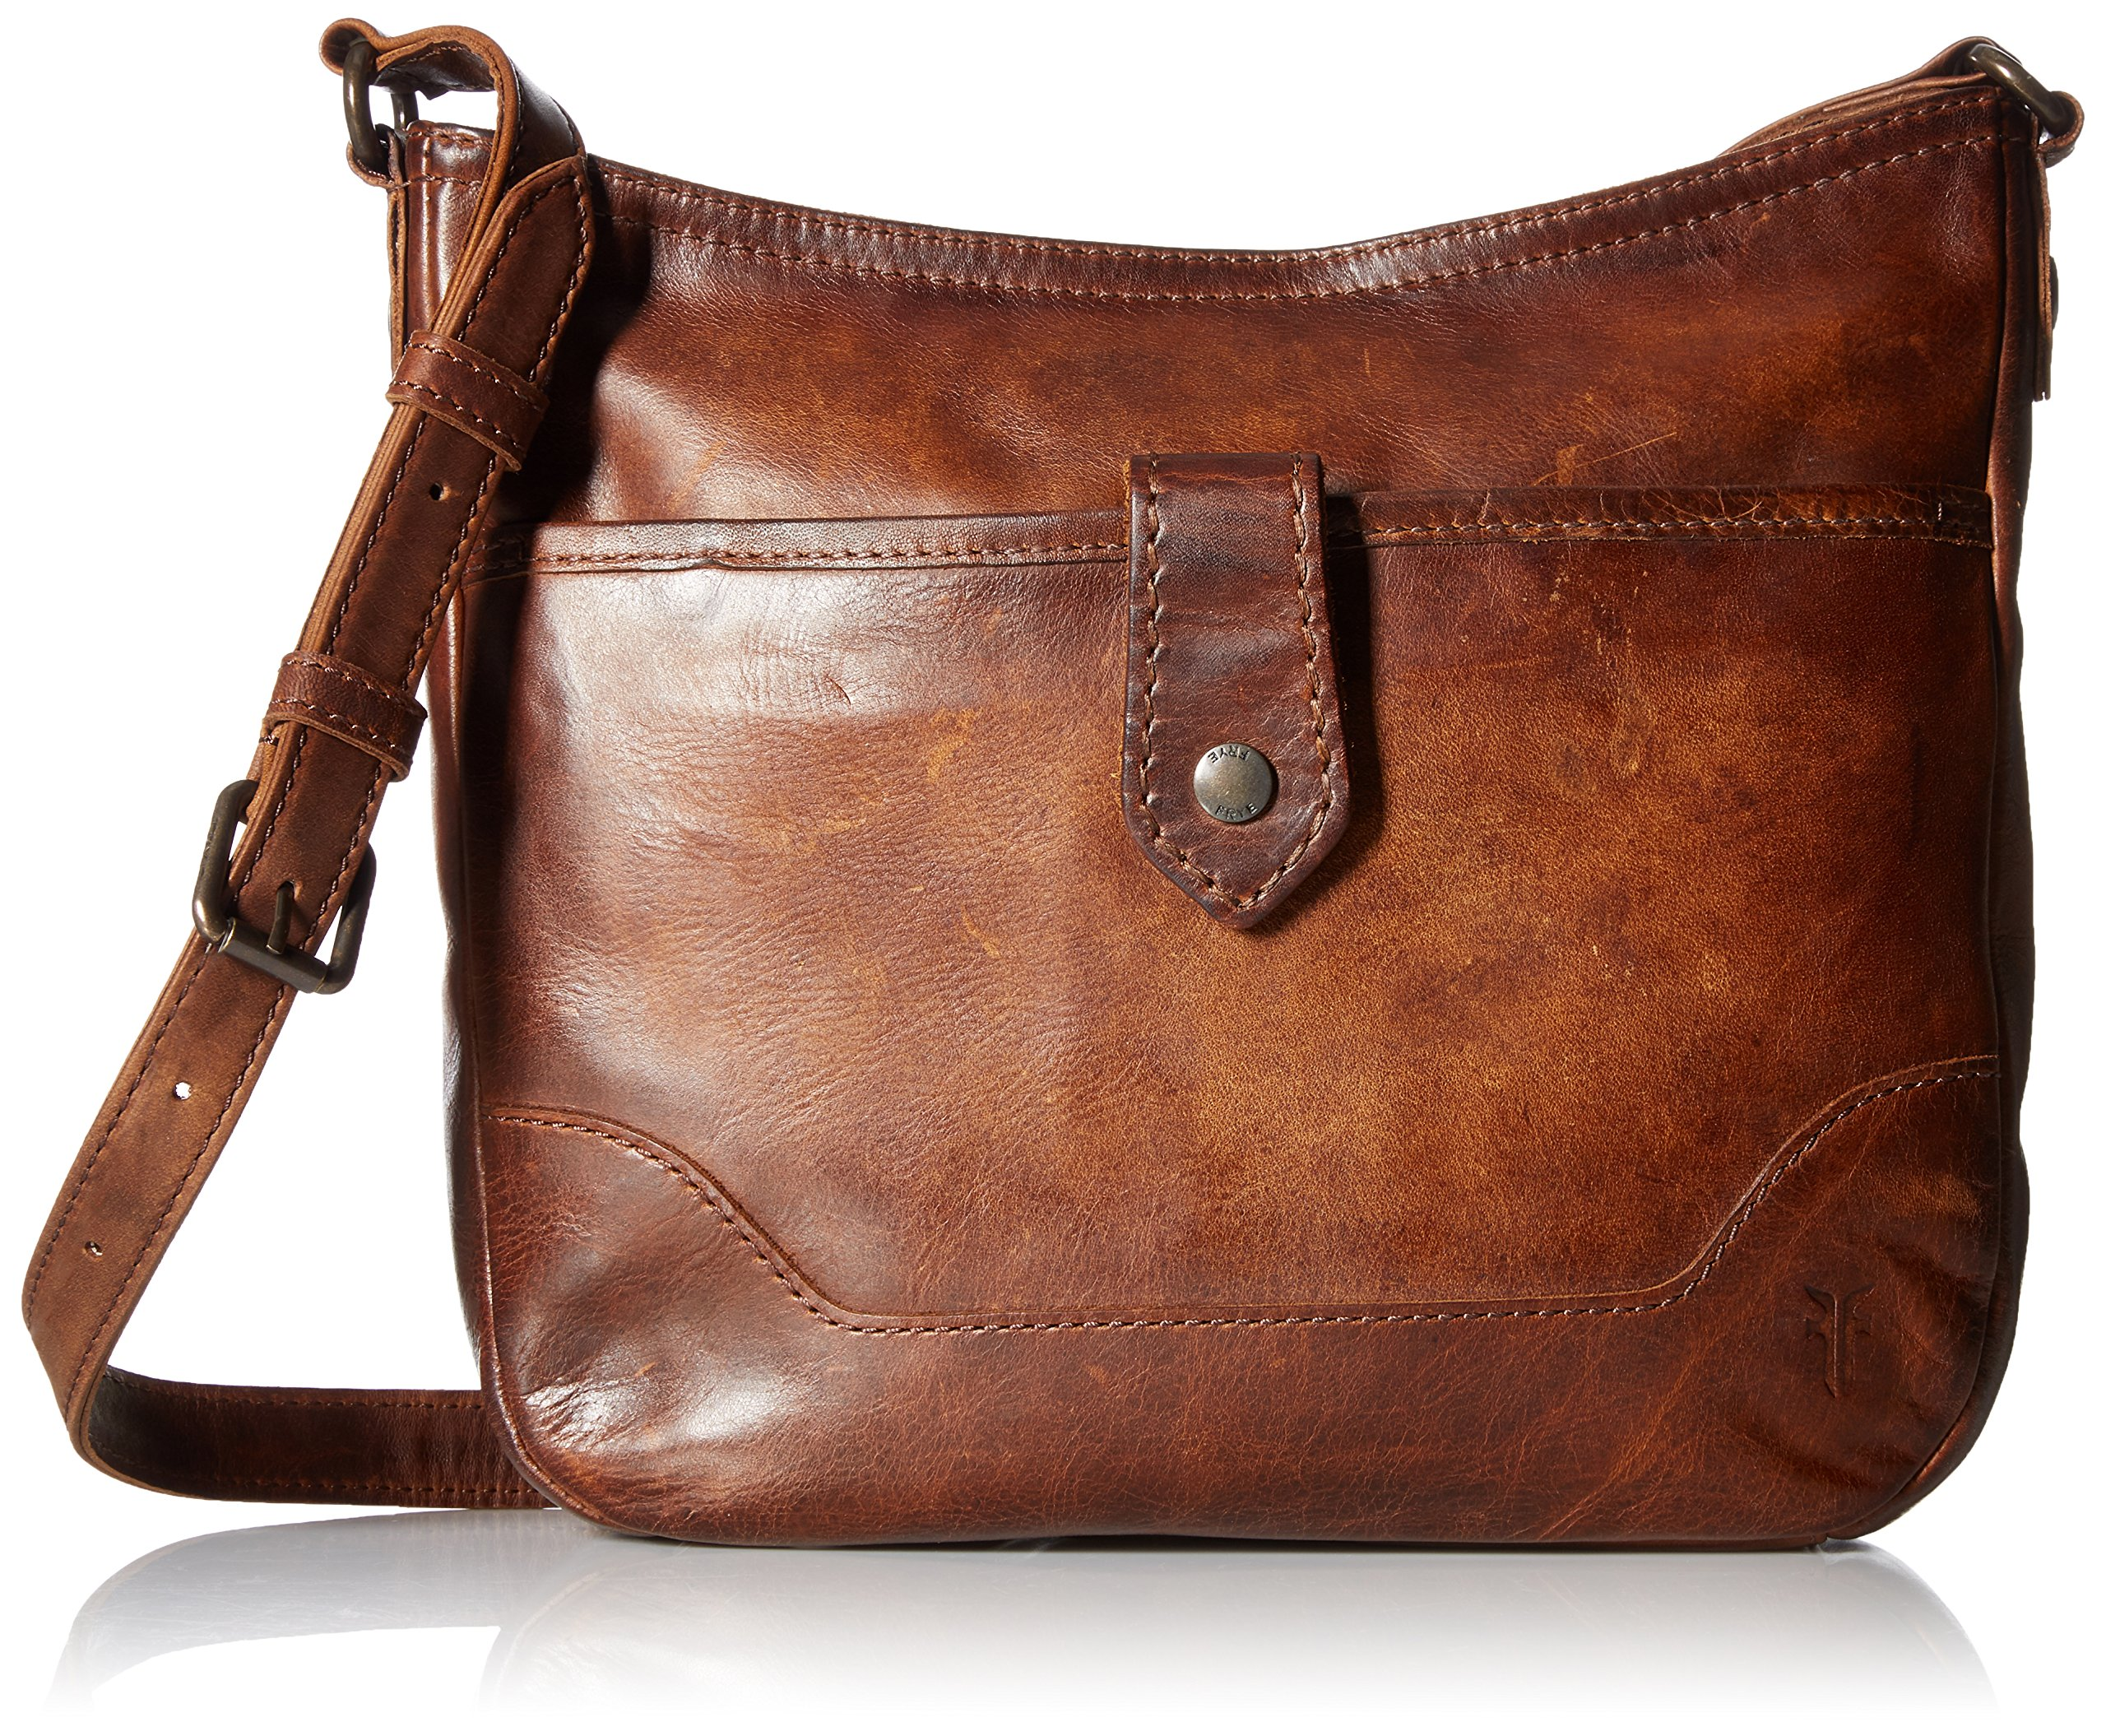 Frye Melissa Button Crossbody Bag, Dark Brown, One Size